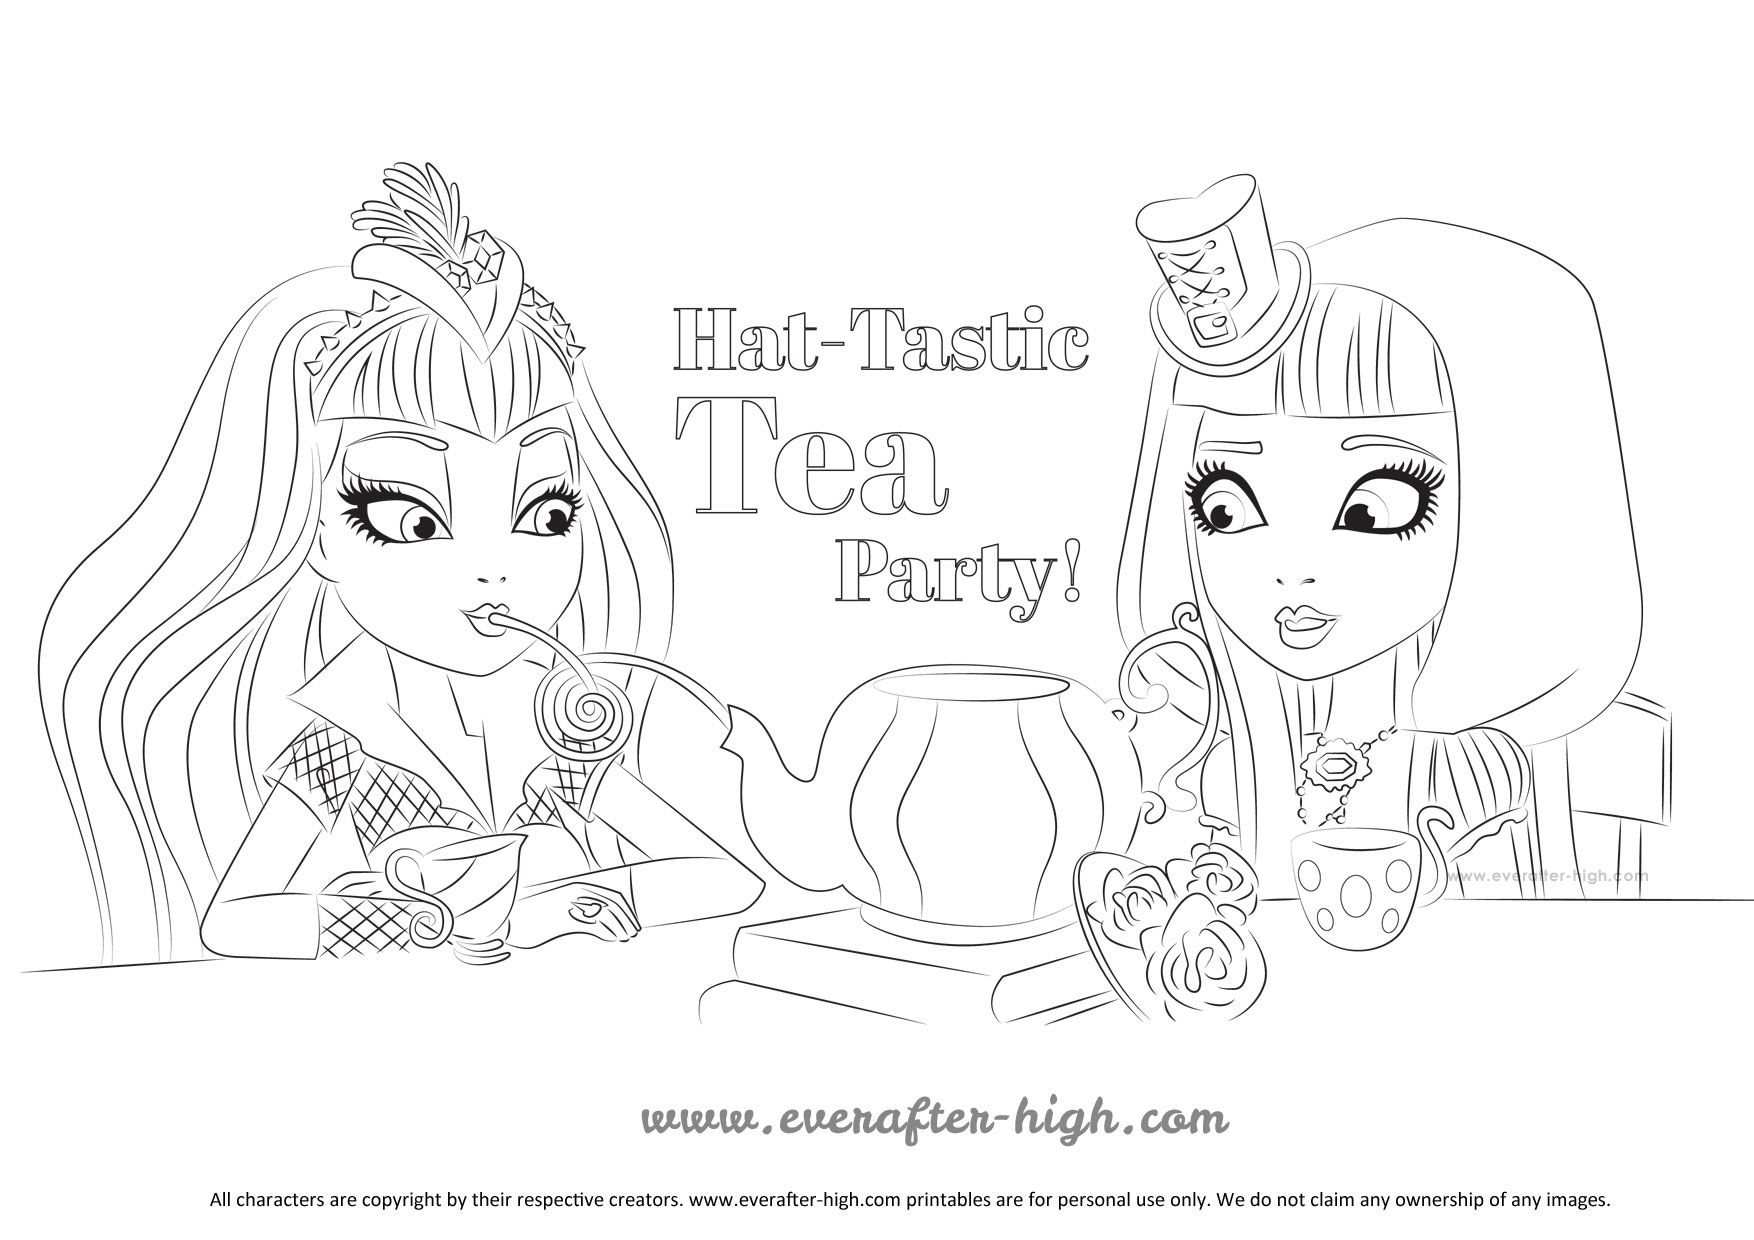 Ever after high cerise hood coloring pages getcoloringpages com